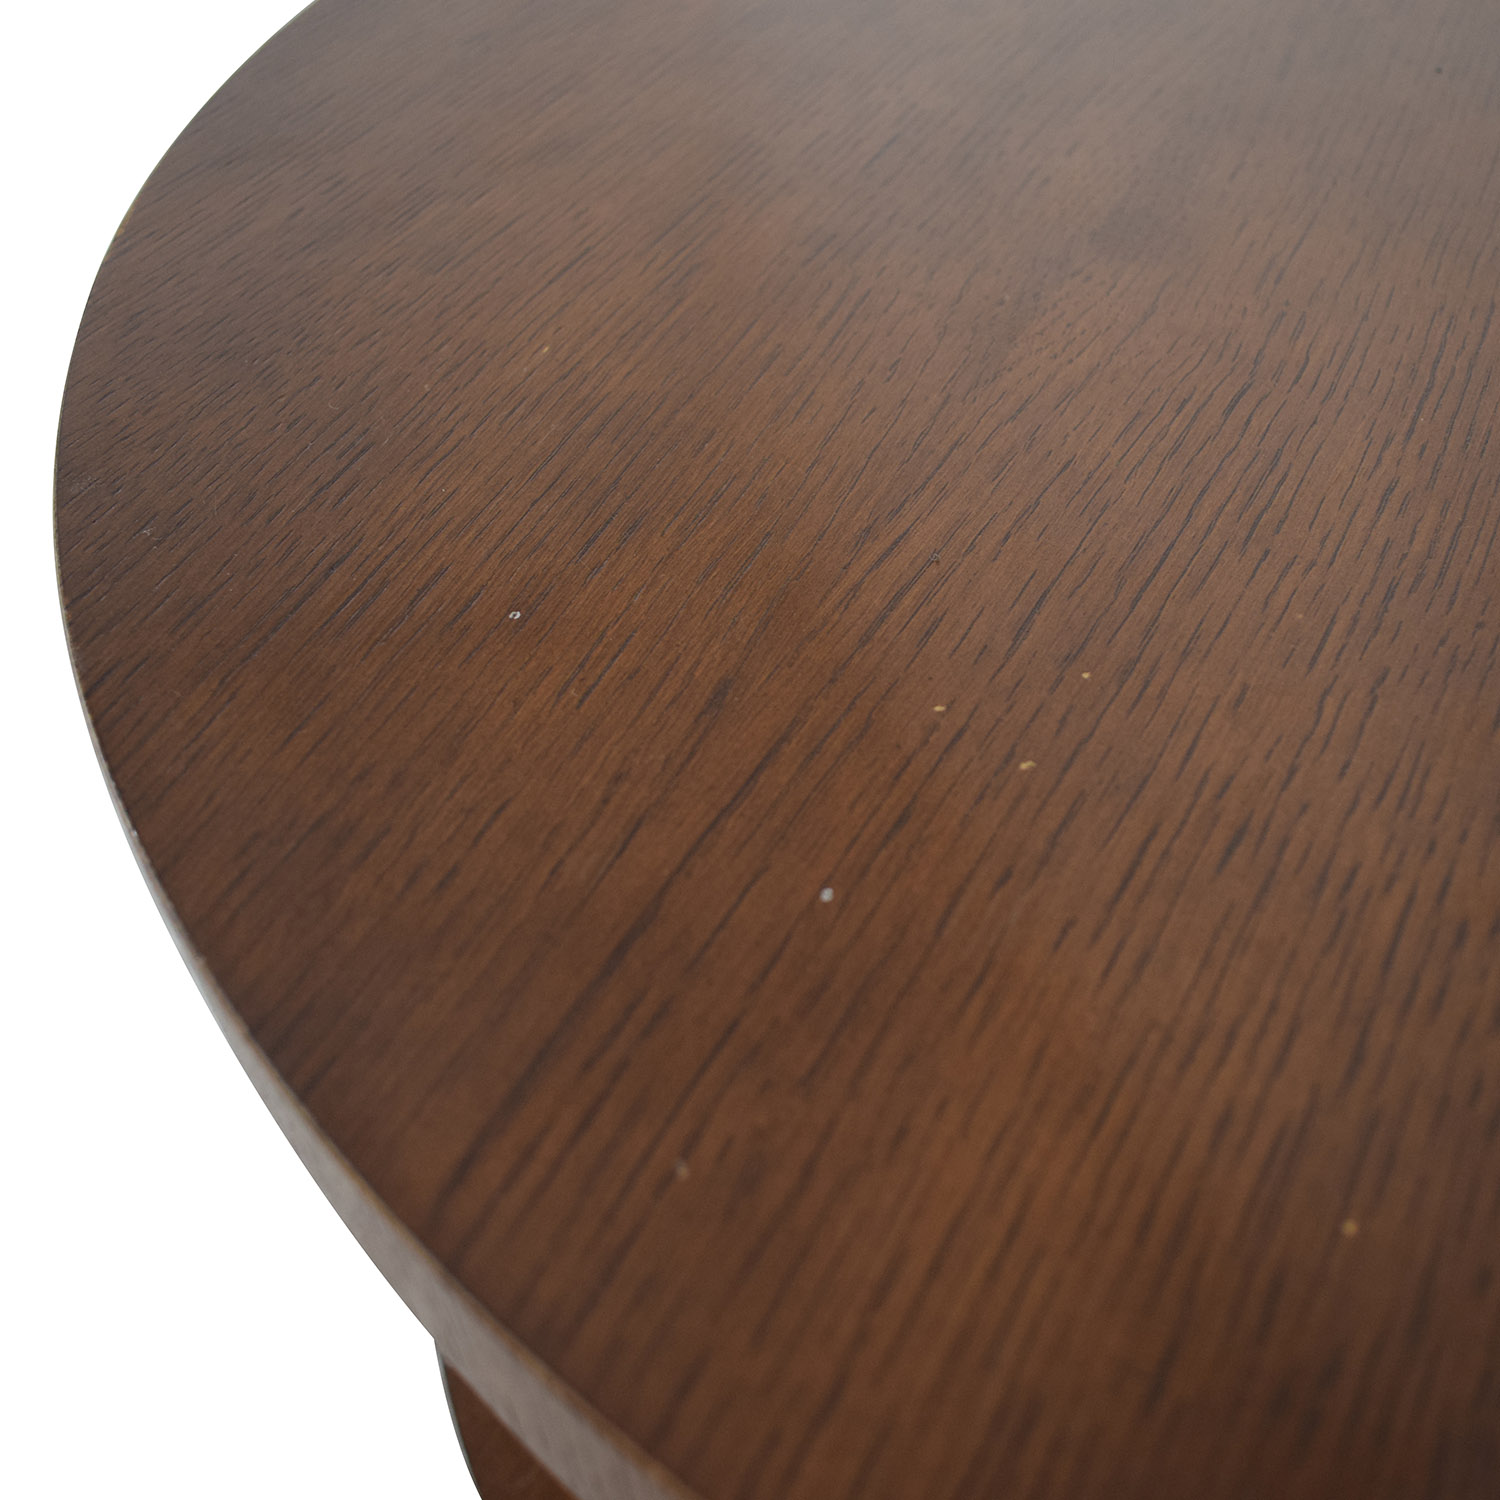 Baker Furniture Baker Furniture Barbara Barry Round Tiered Occasional Table used